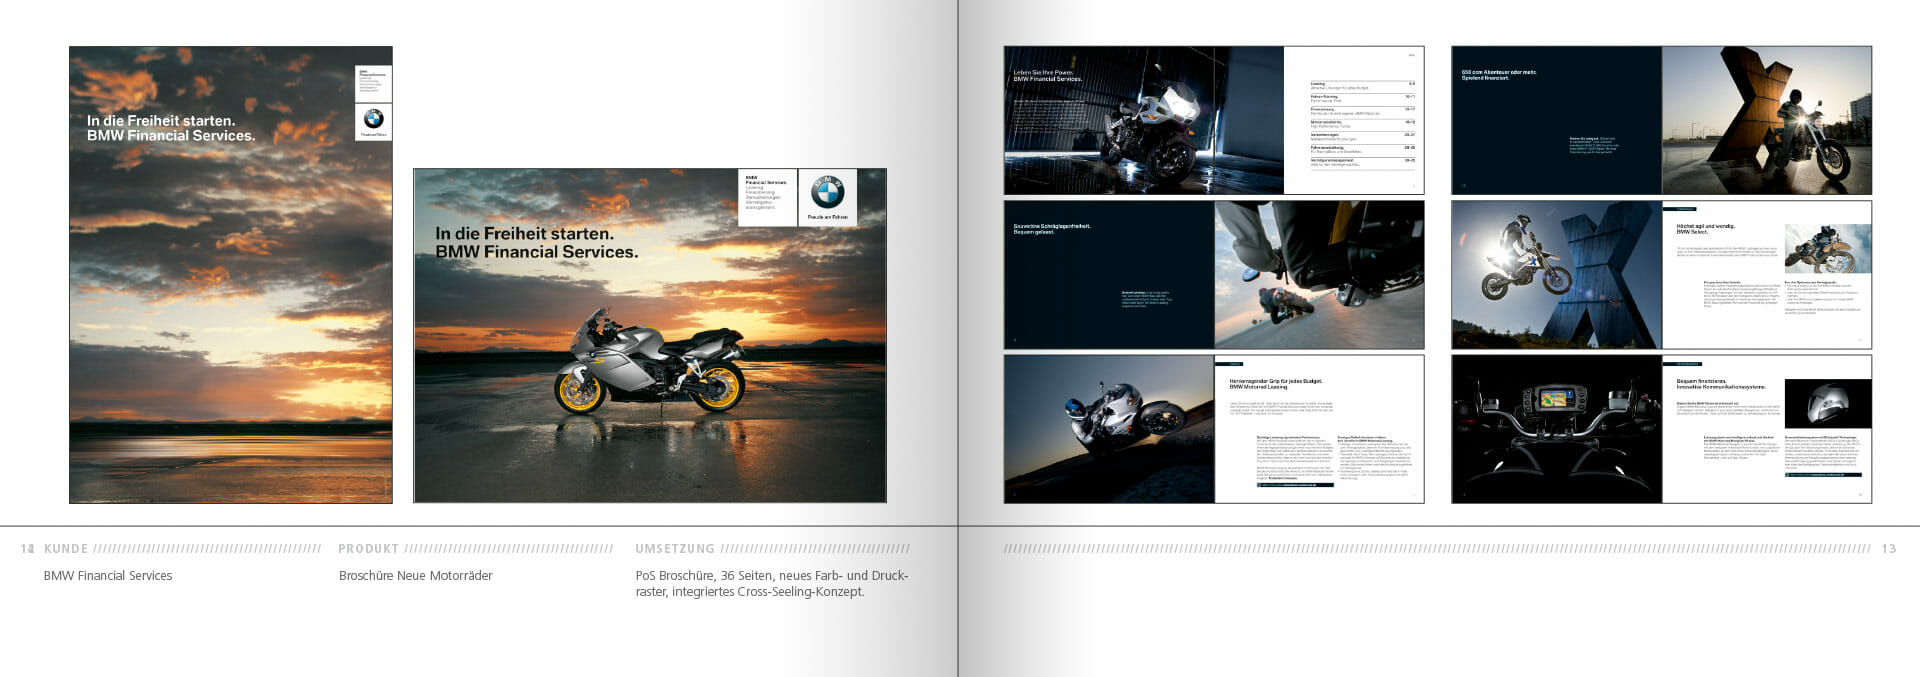 BMW Group Works 2001-2009 Booklet 12-13